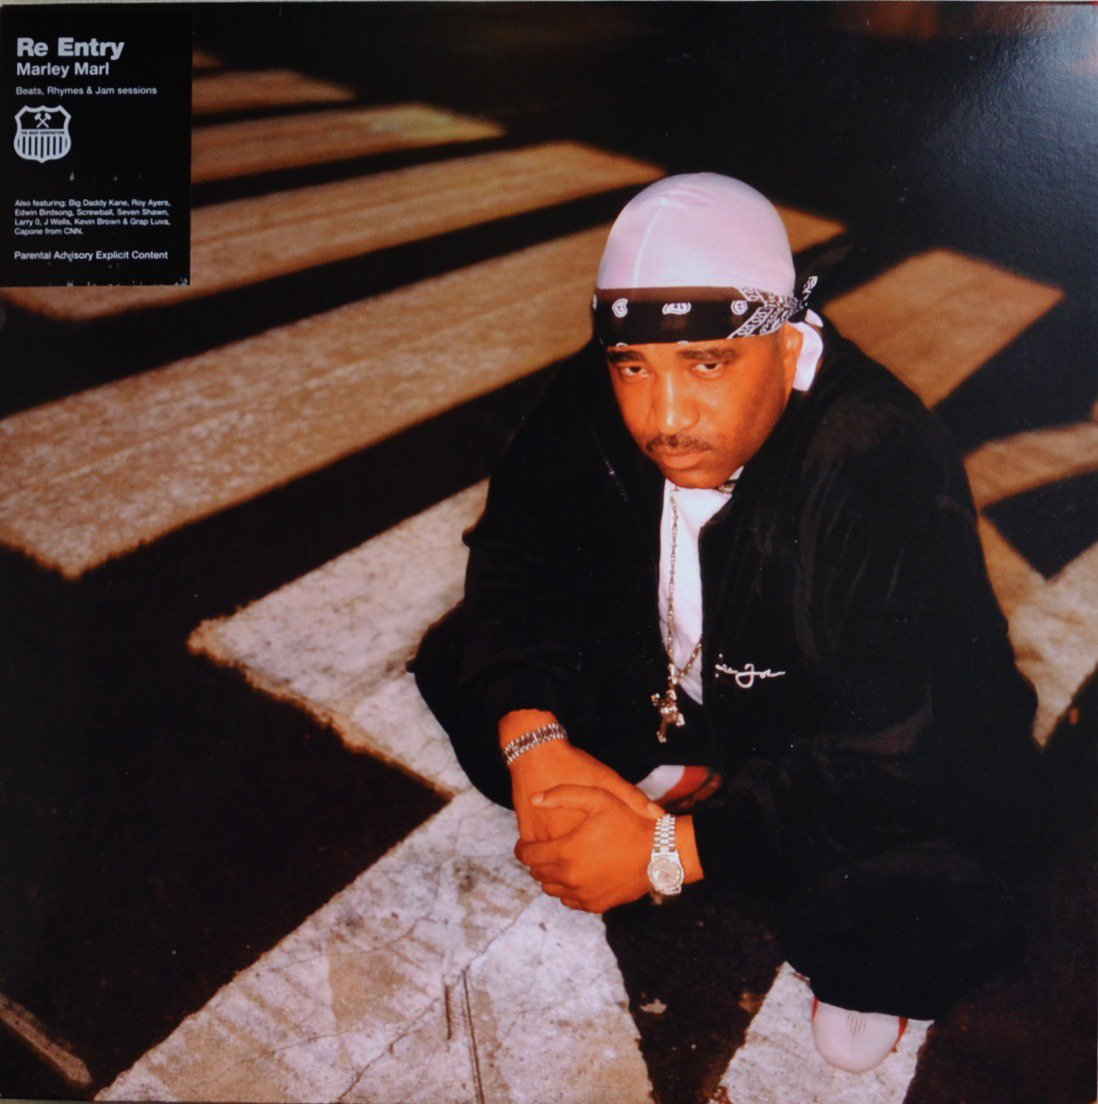 MARLEY MARL / RE-ENTRY (2LP)